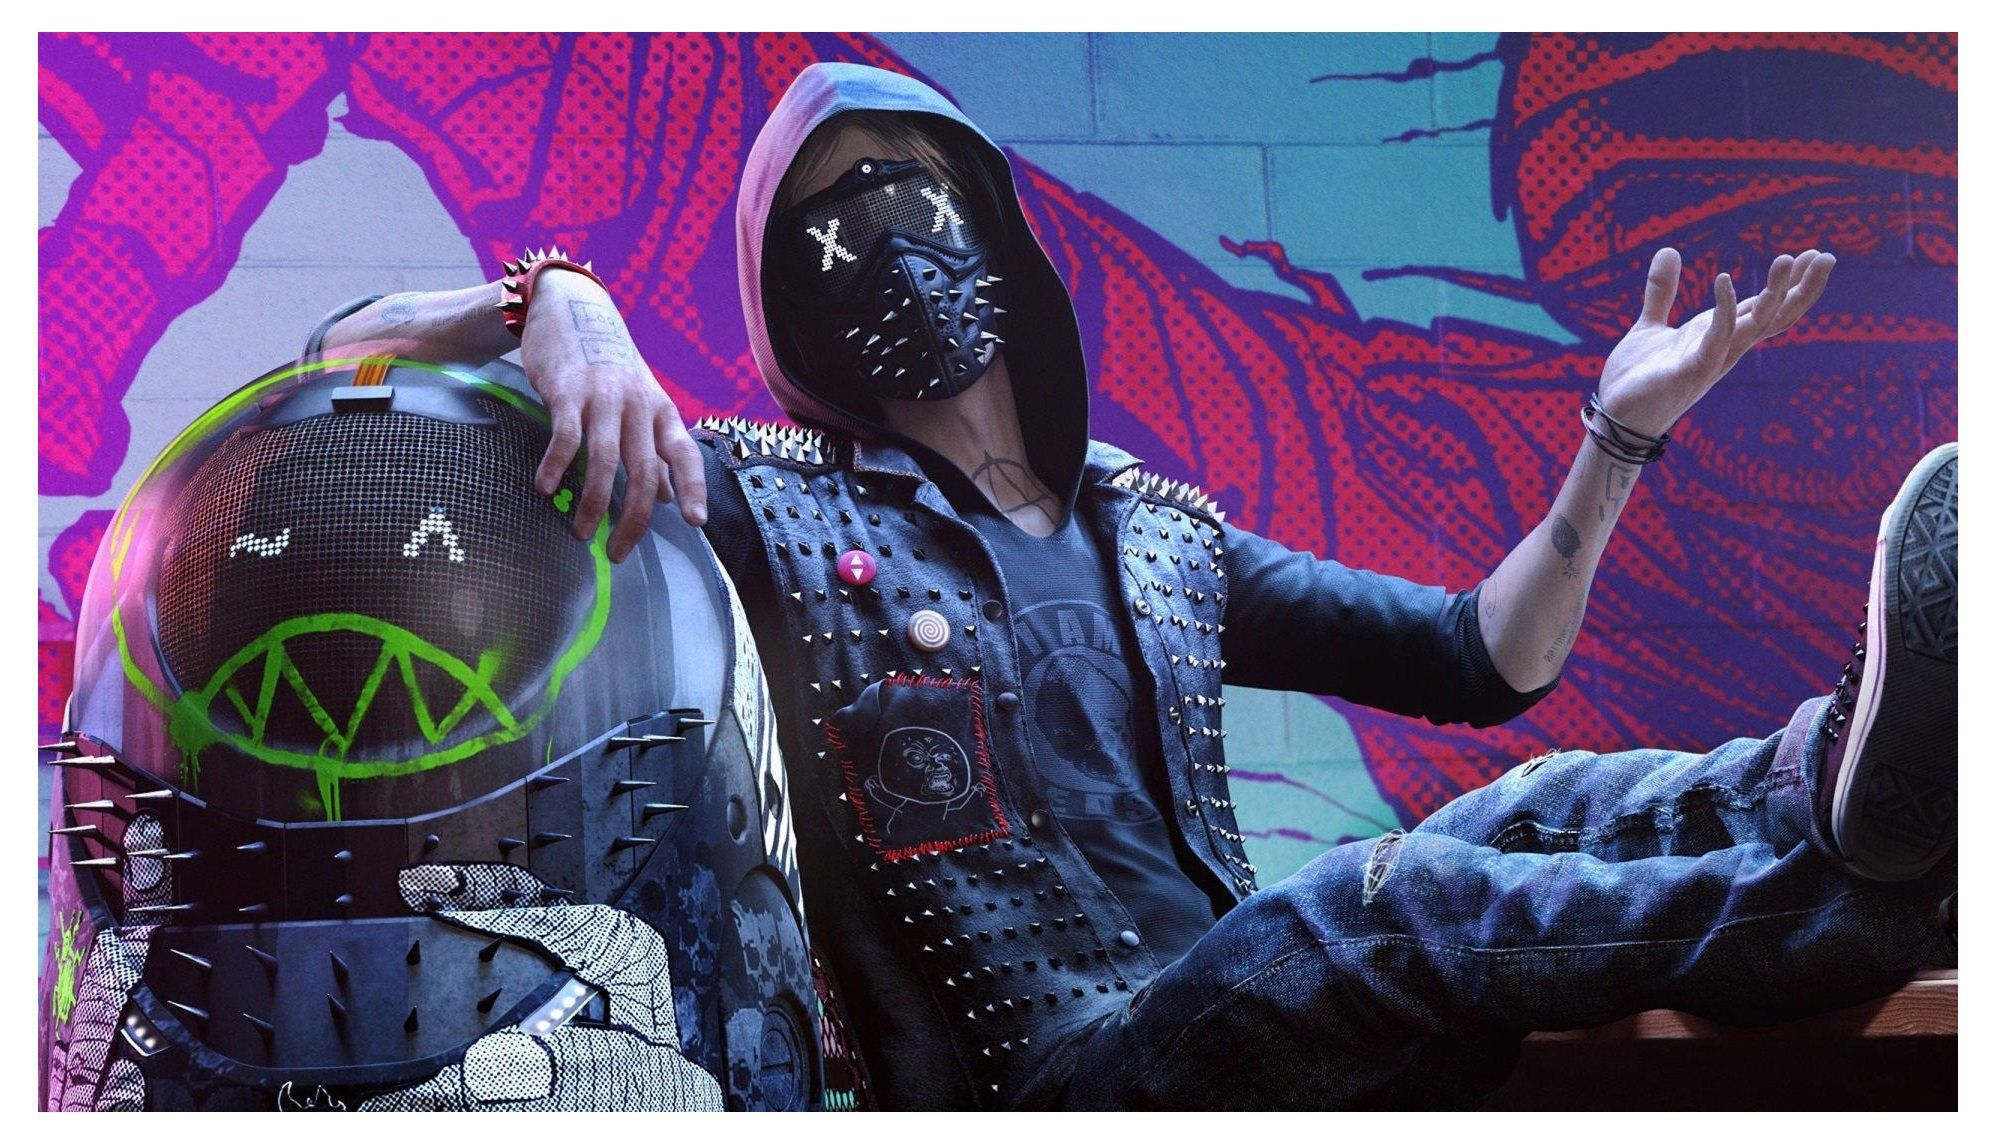 1920x1080 Wrench Free Download Wallpaper For Pc Watch Dogs 2 Wallpaper For Pc Watchdogs2wallpaperforpc Filen Wrench Watch Dogs 2 Watch Dogs Watch Dogs 1